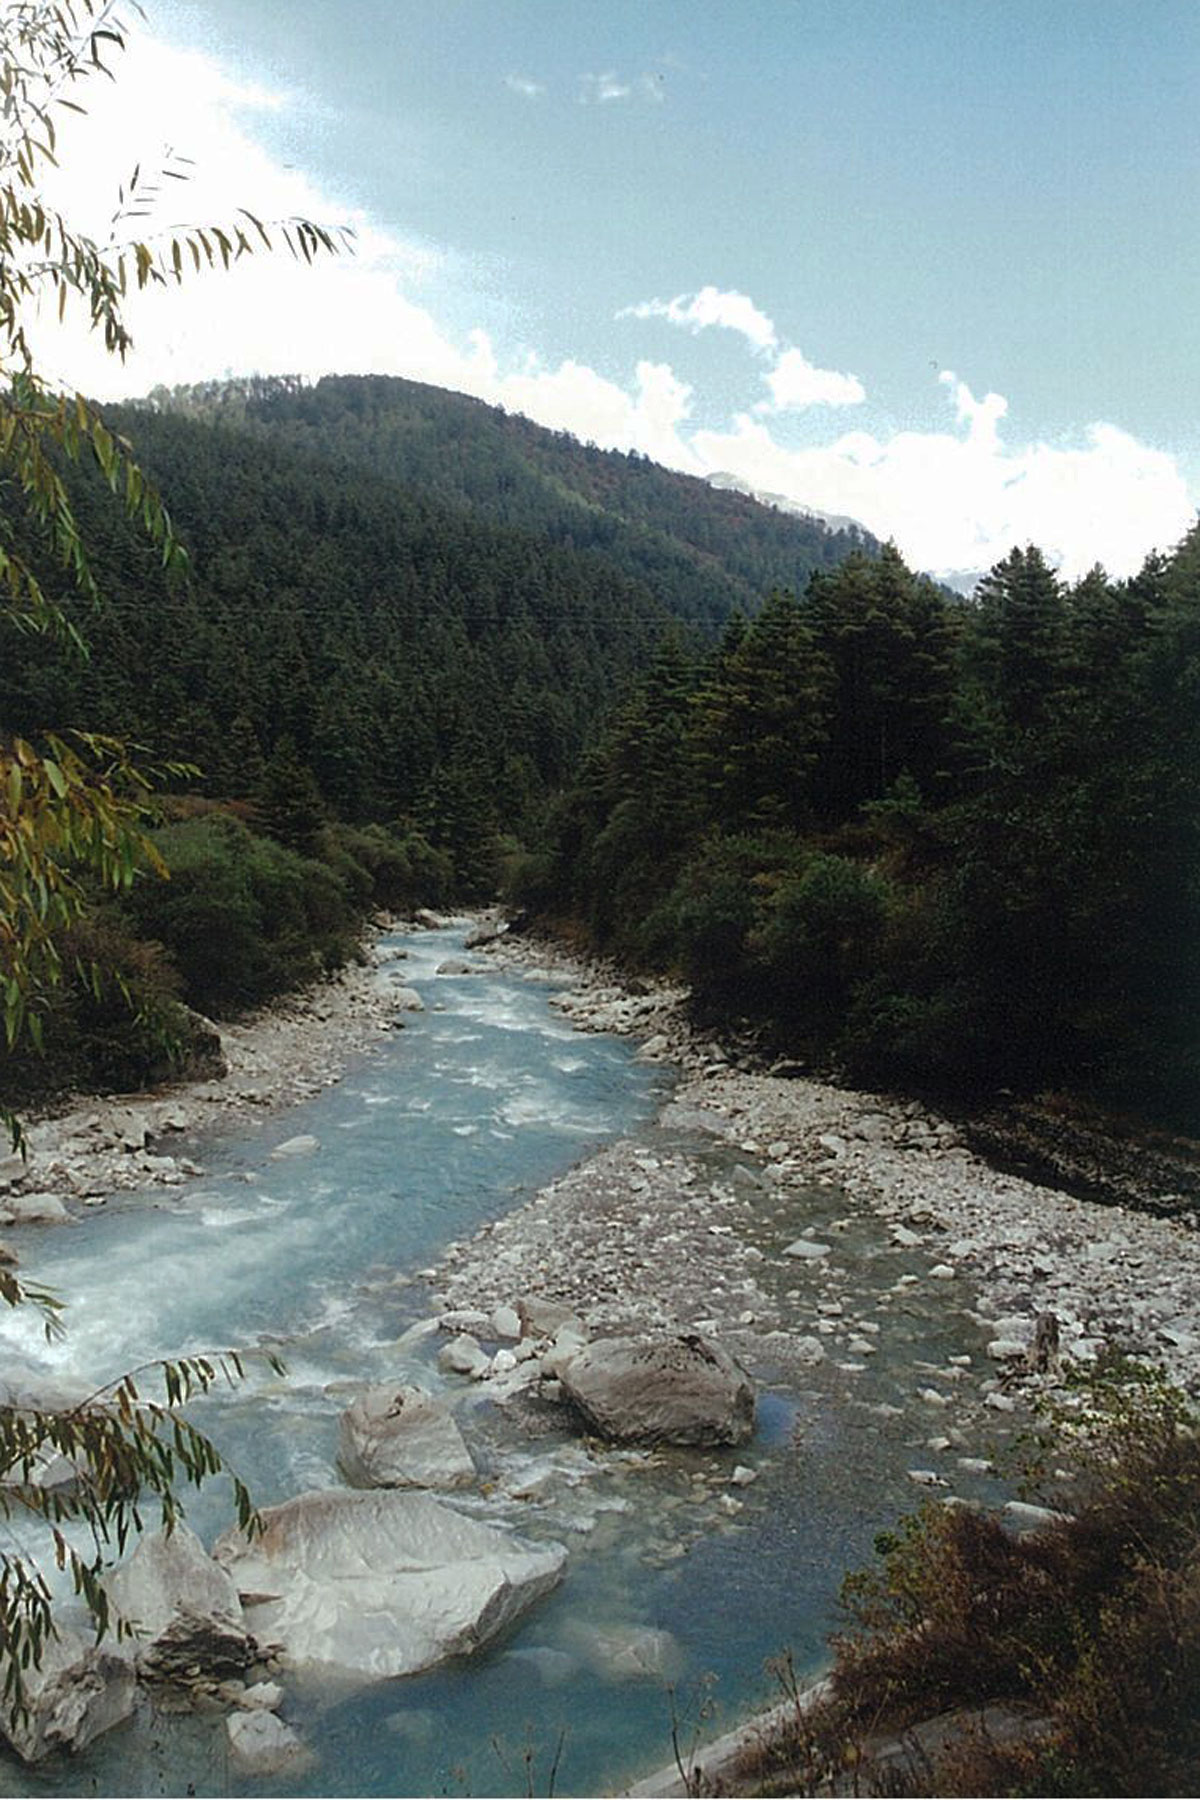 Mountain Stream River Upper Dolpo Trek Nepal Trekking Hike Hiking Himalayas